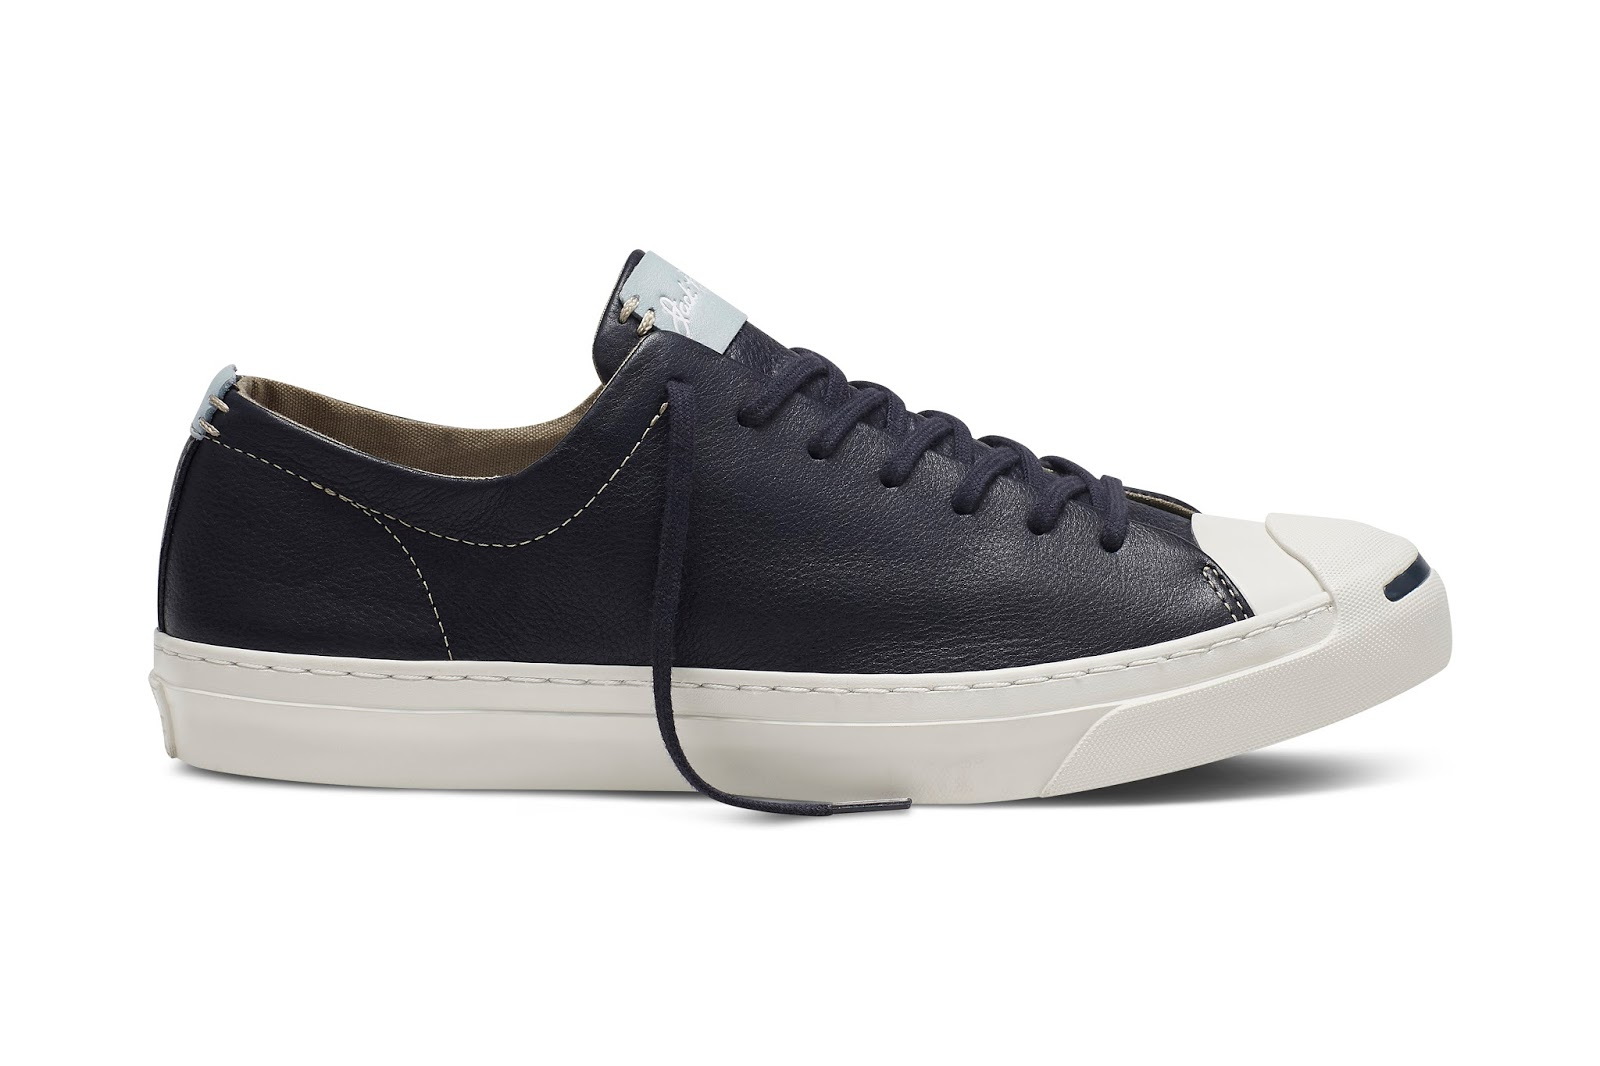 1cb927e4f340 ... leather upper with details including a post-applied Jack Purcell logo  on the tongueand punched eyelets for a smooth quality finish.